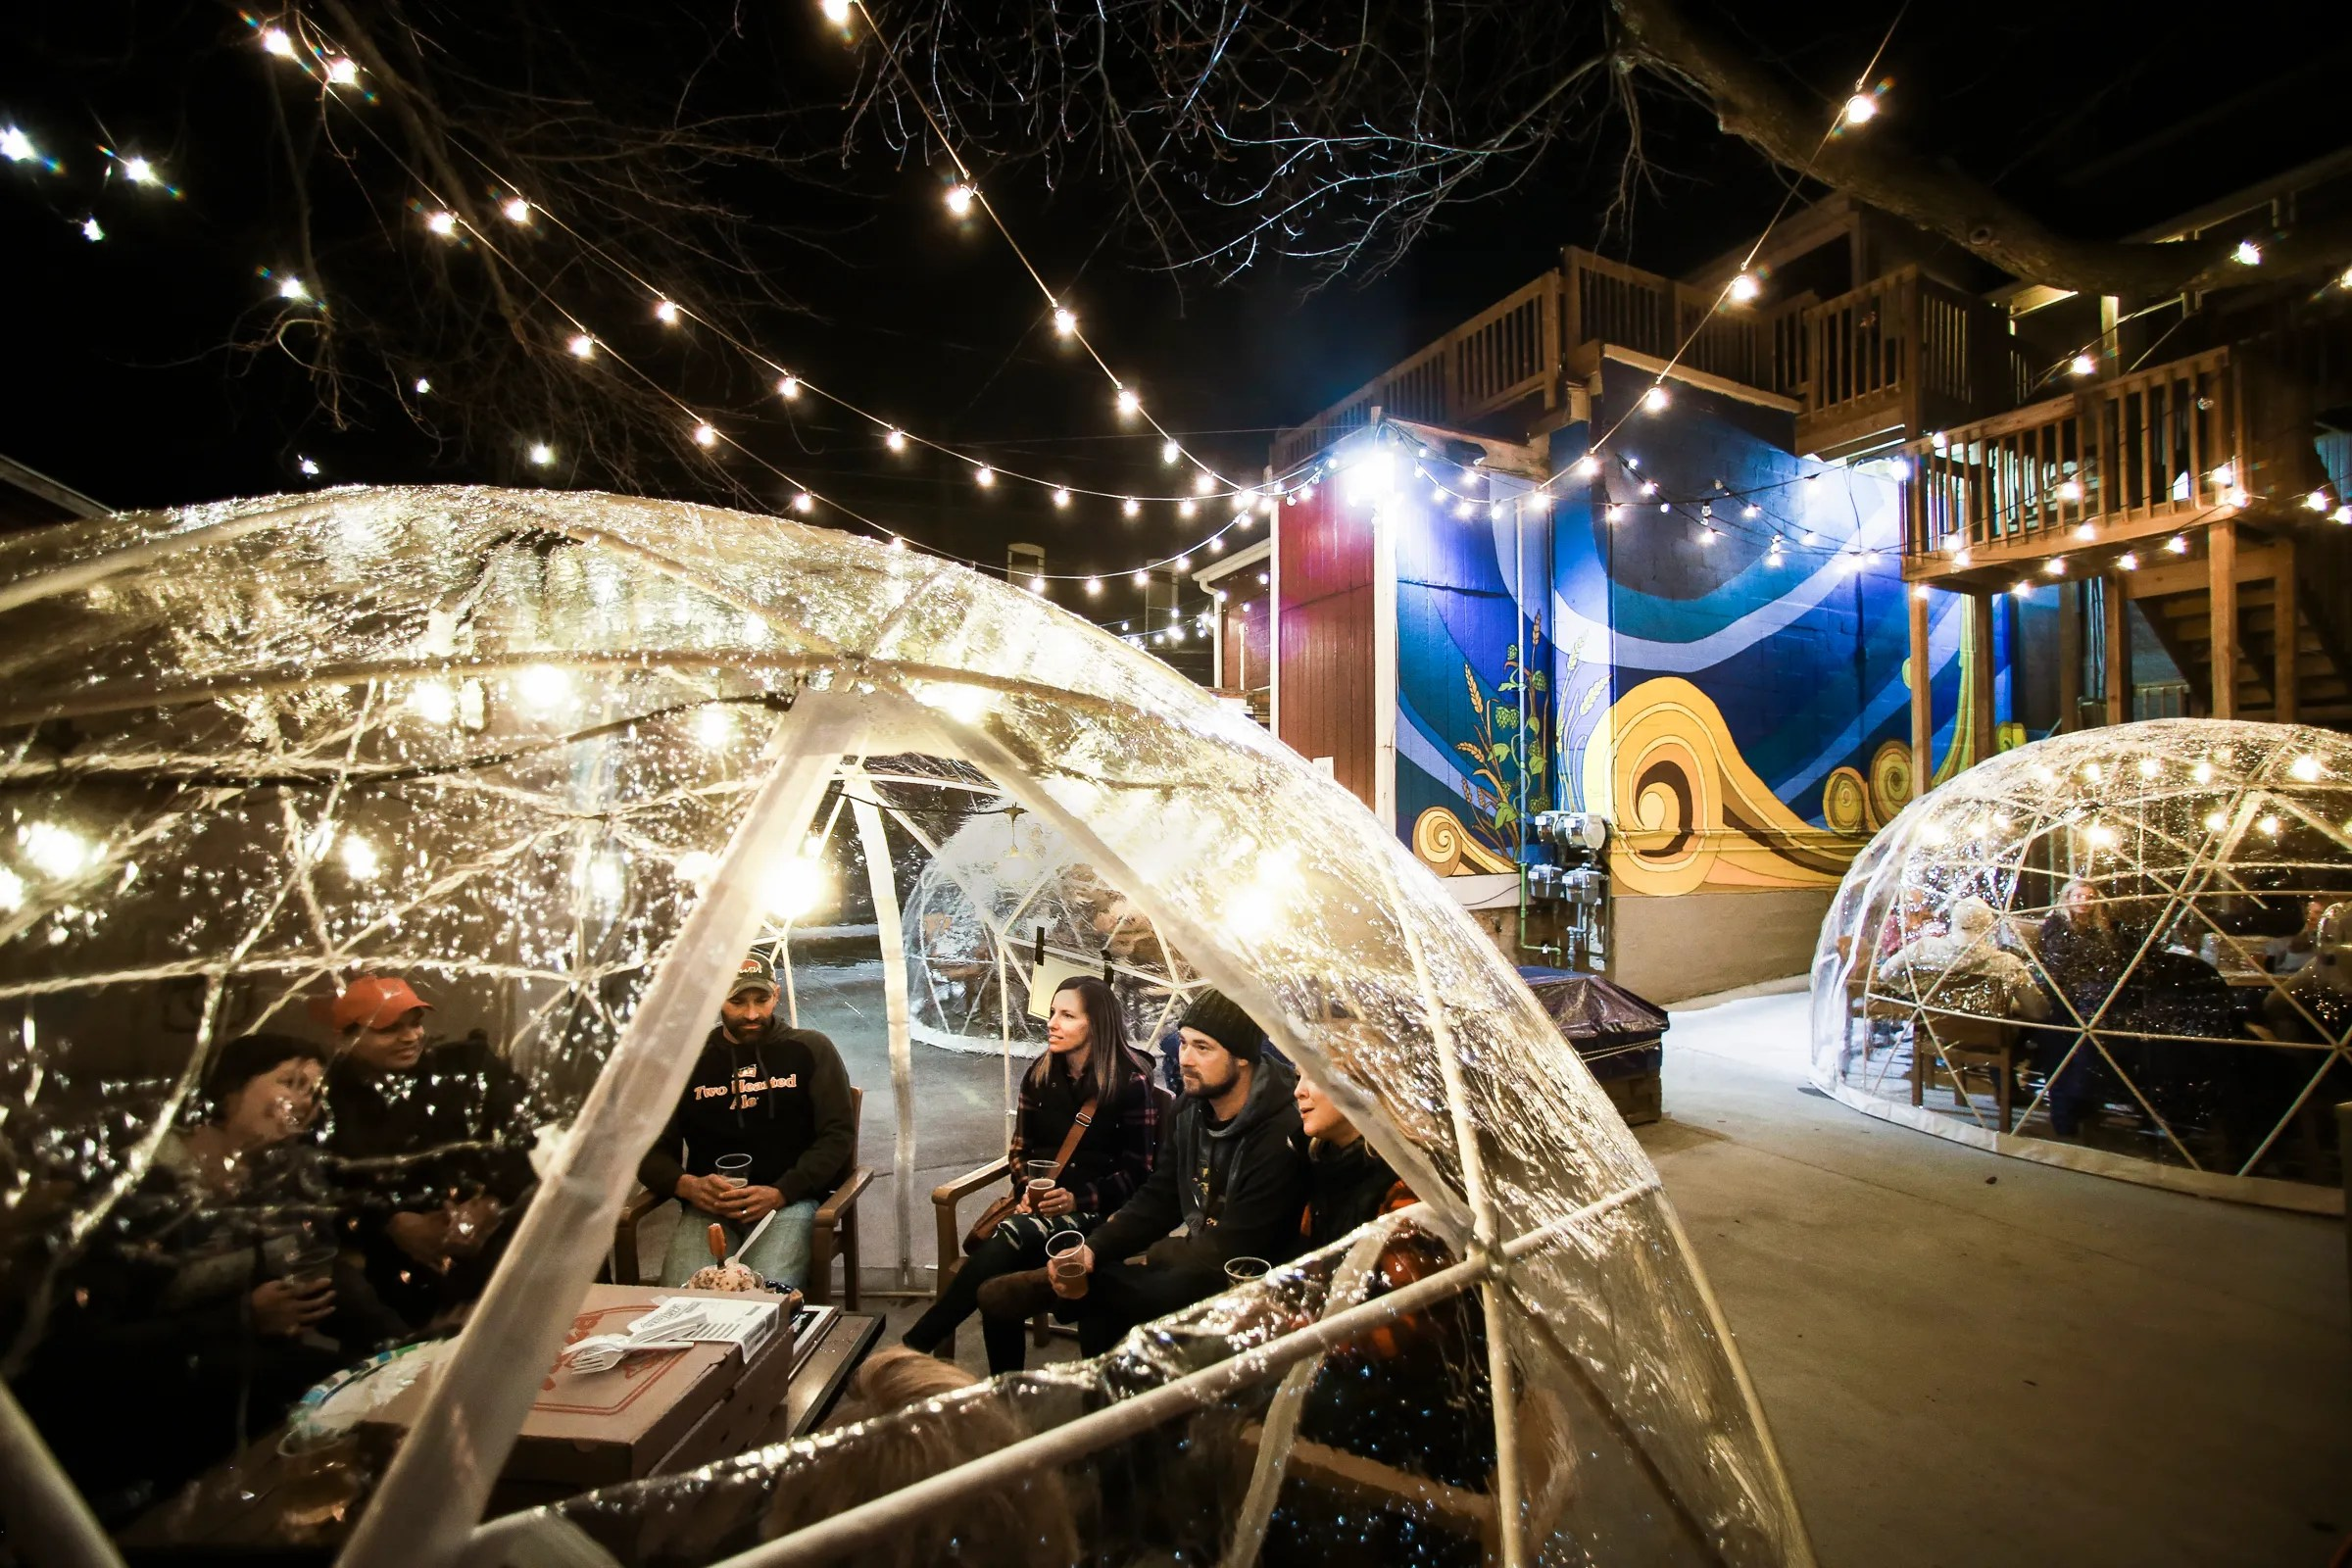 igloos could extend outdoor dining